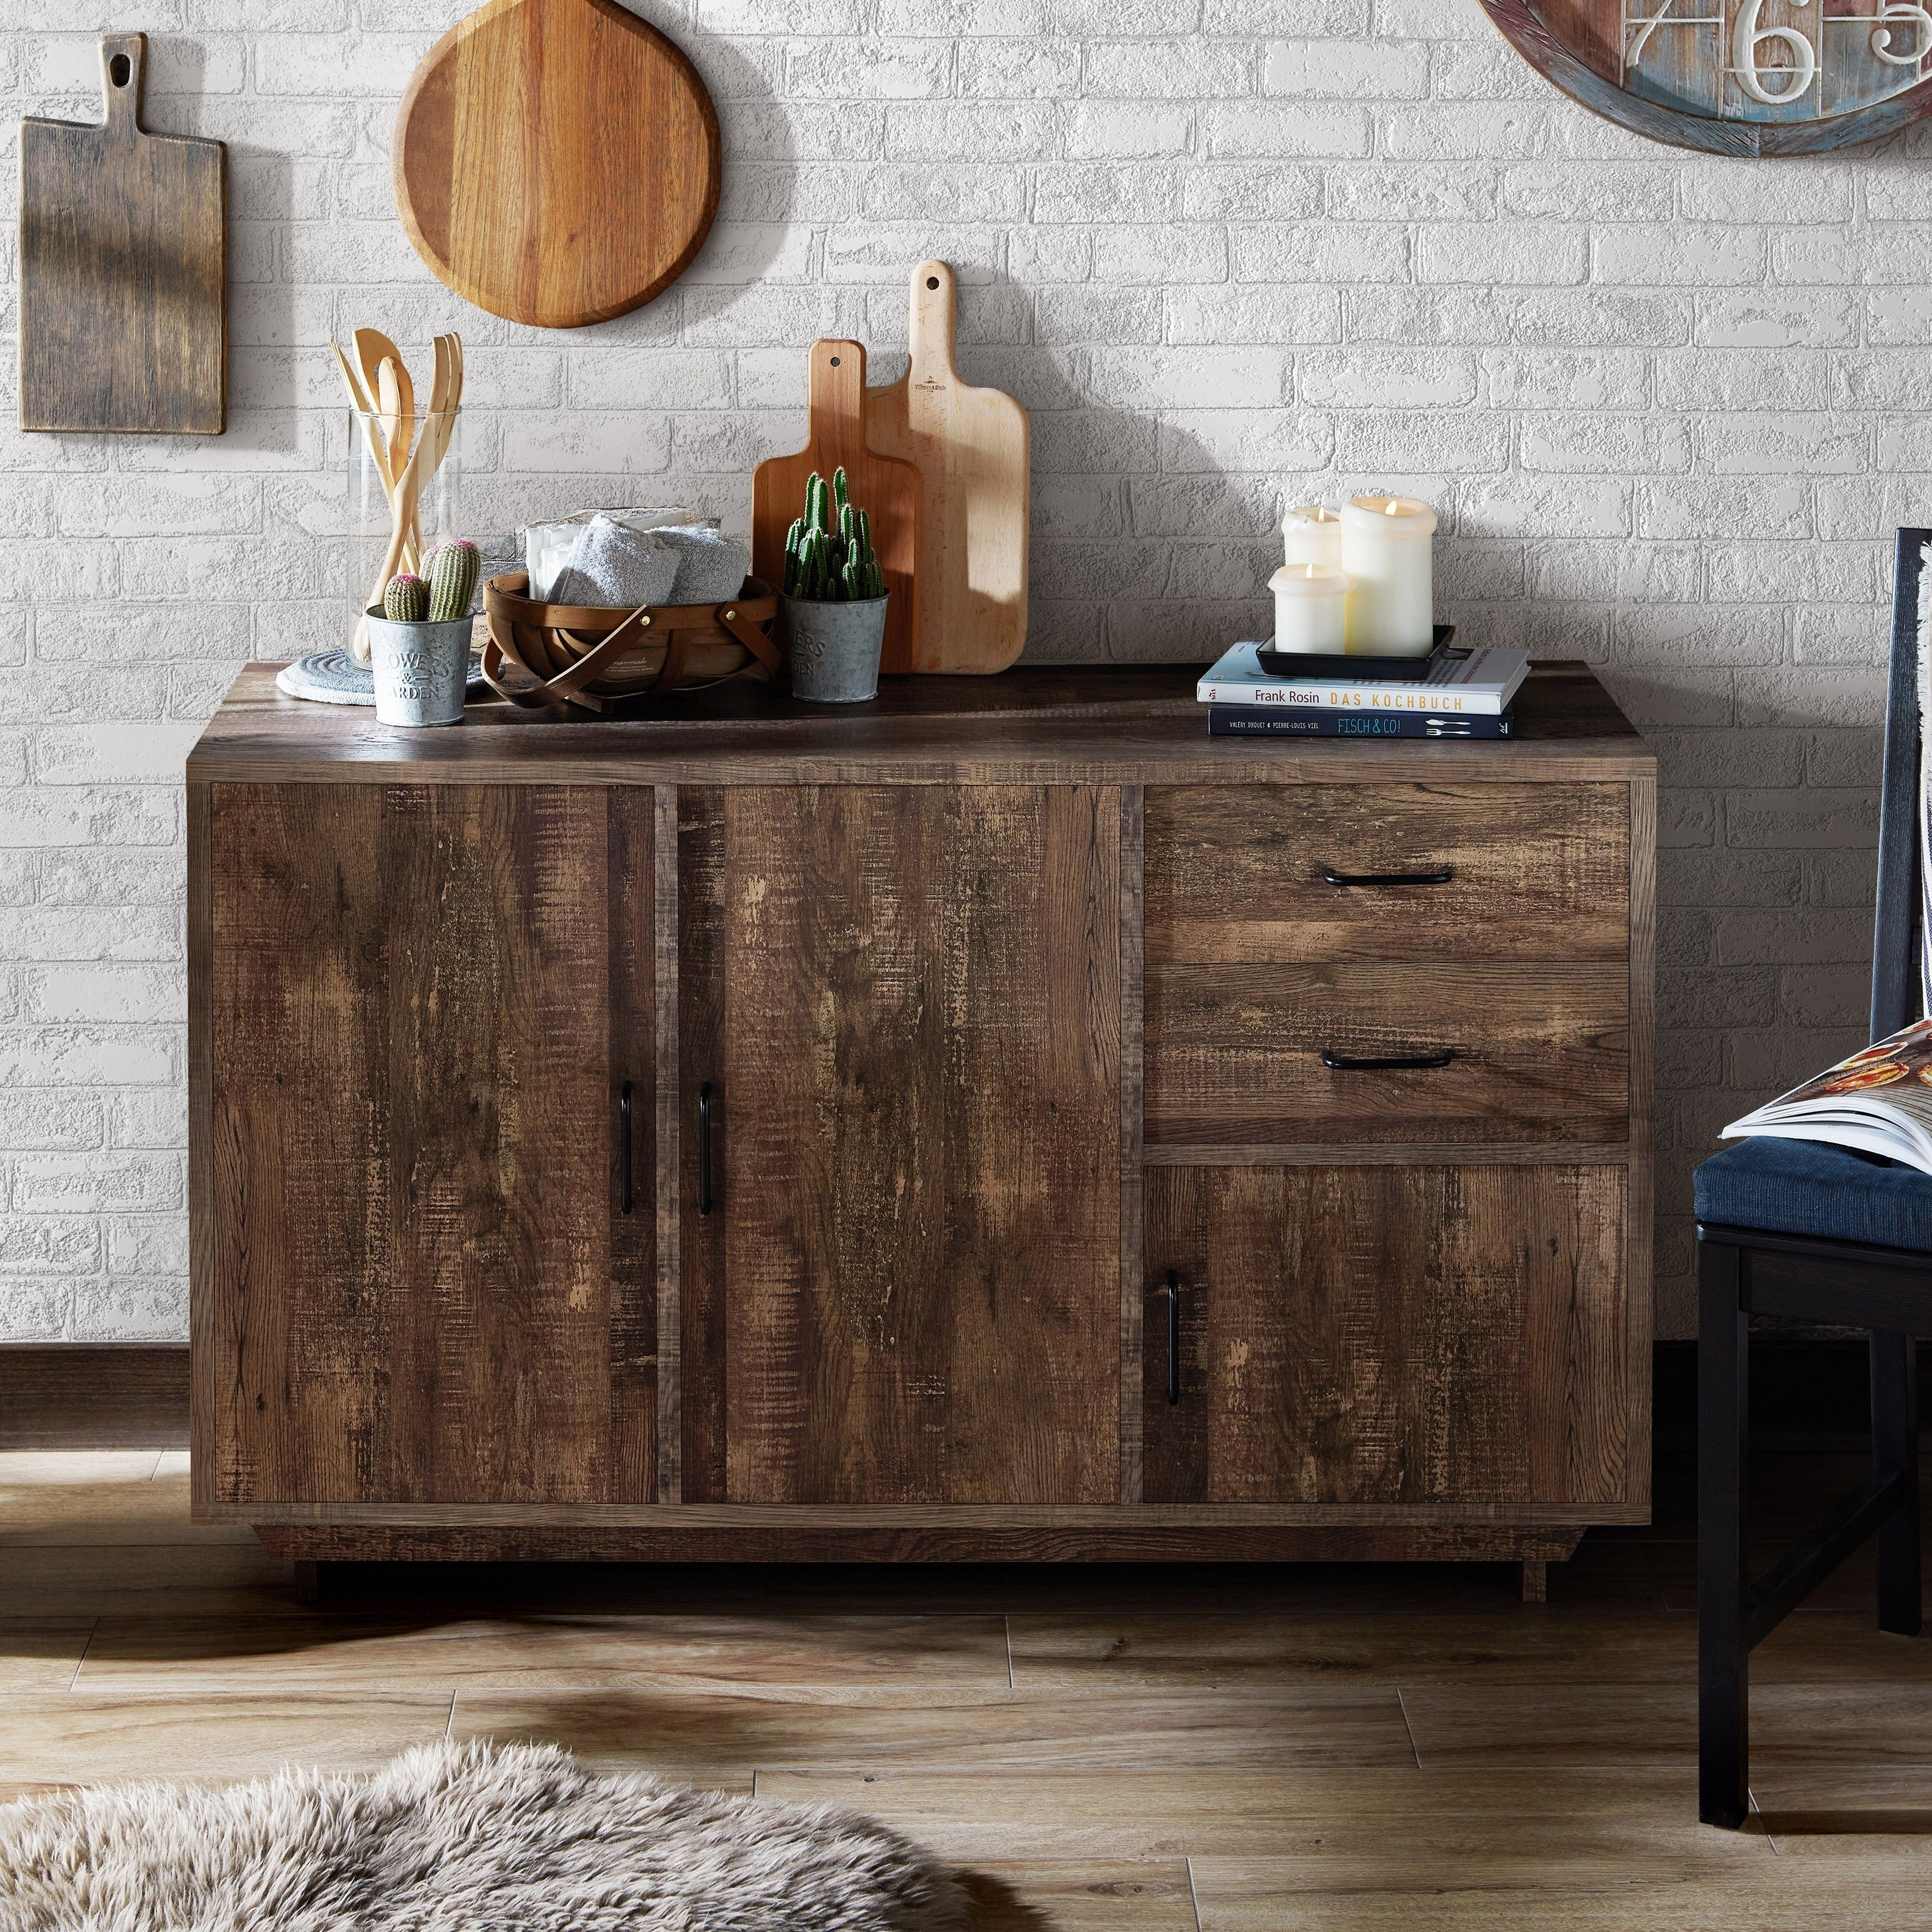 Buy Buffets, Sideboards & China Cabinets Online At Overstock throughout Blue Stone Light Rustic Black Sideboards (Image 11 of 30)